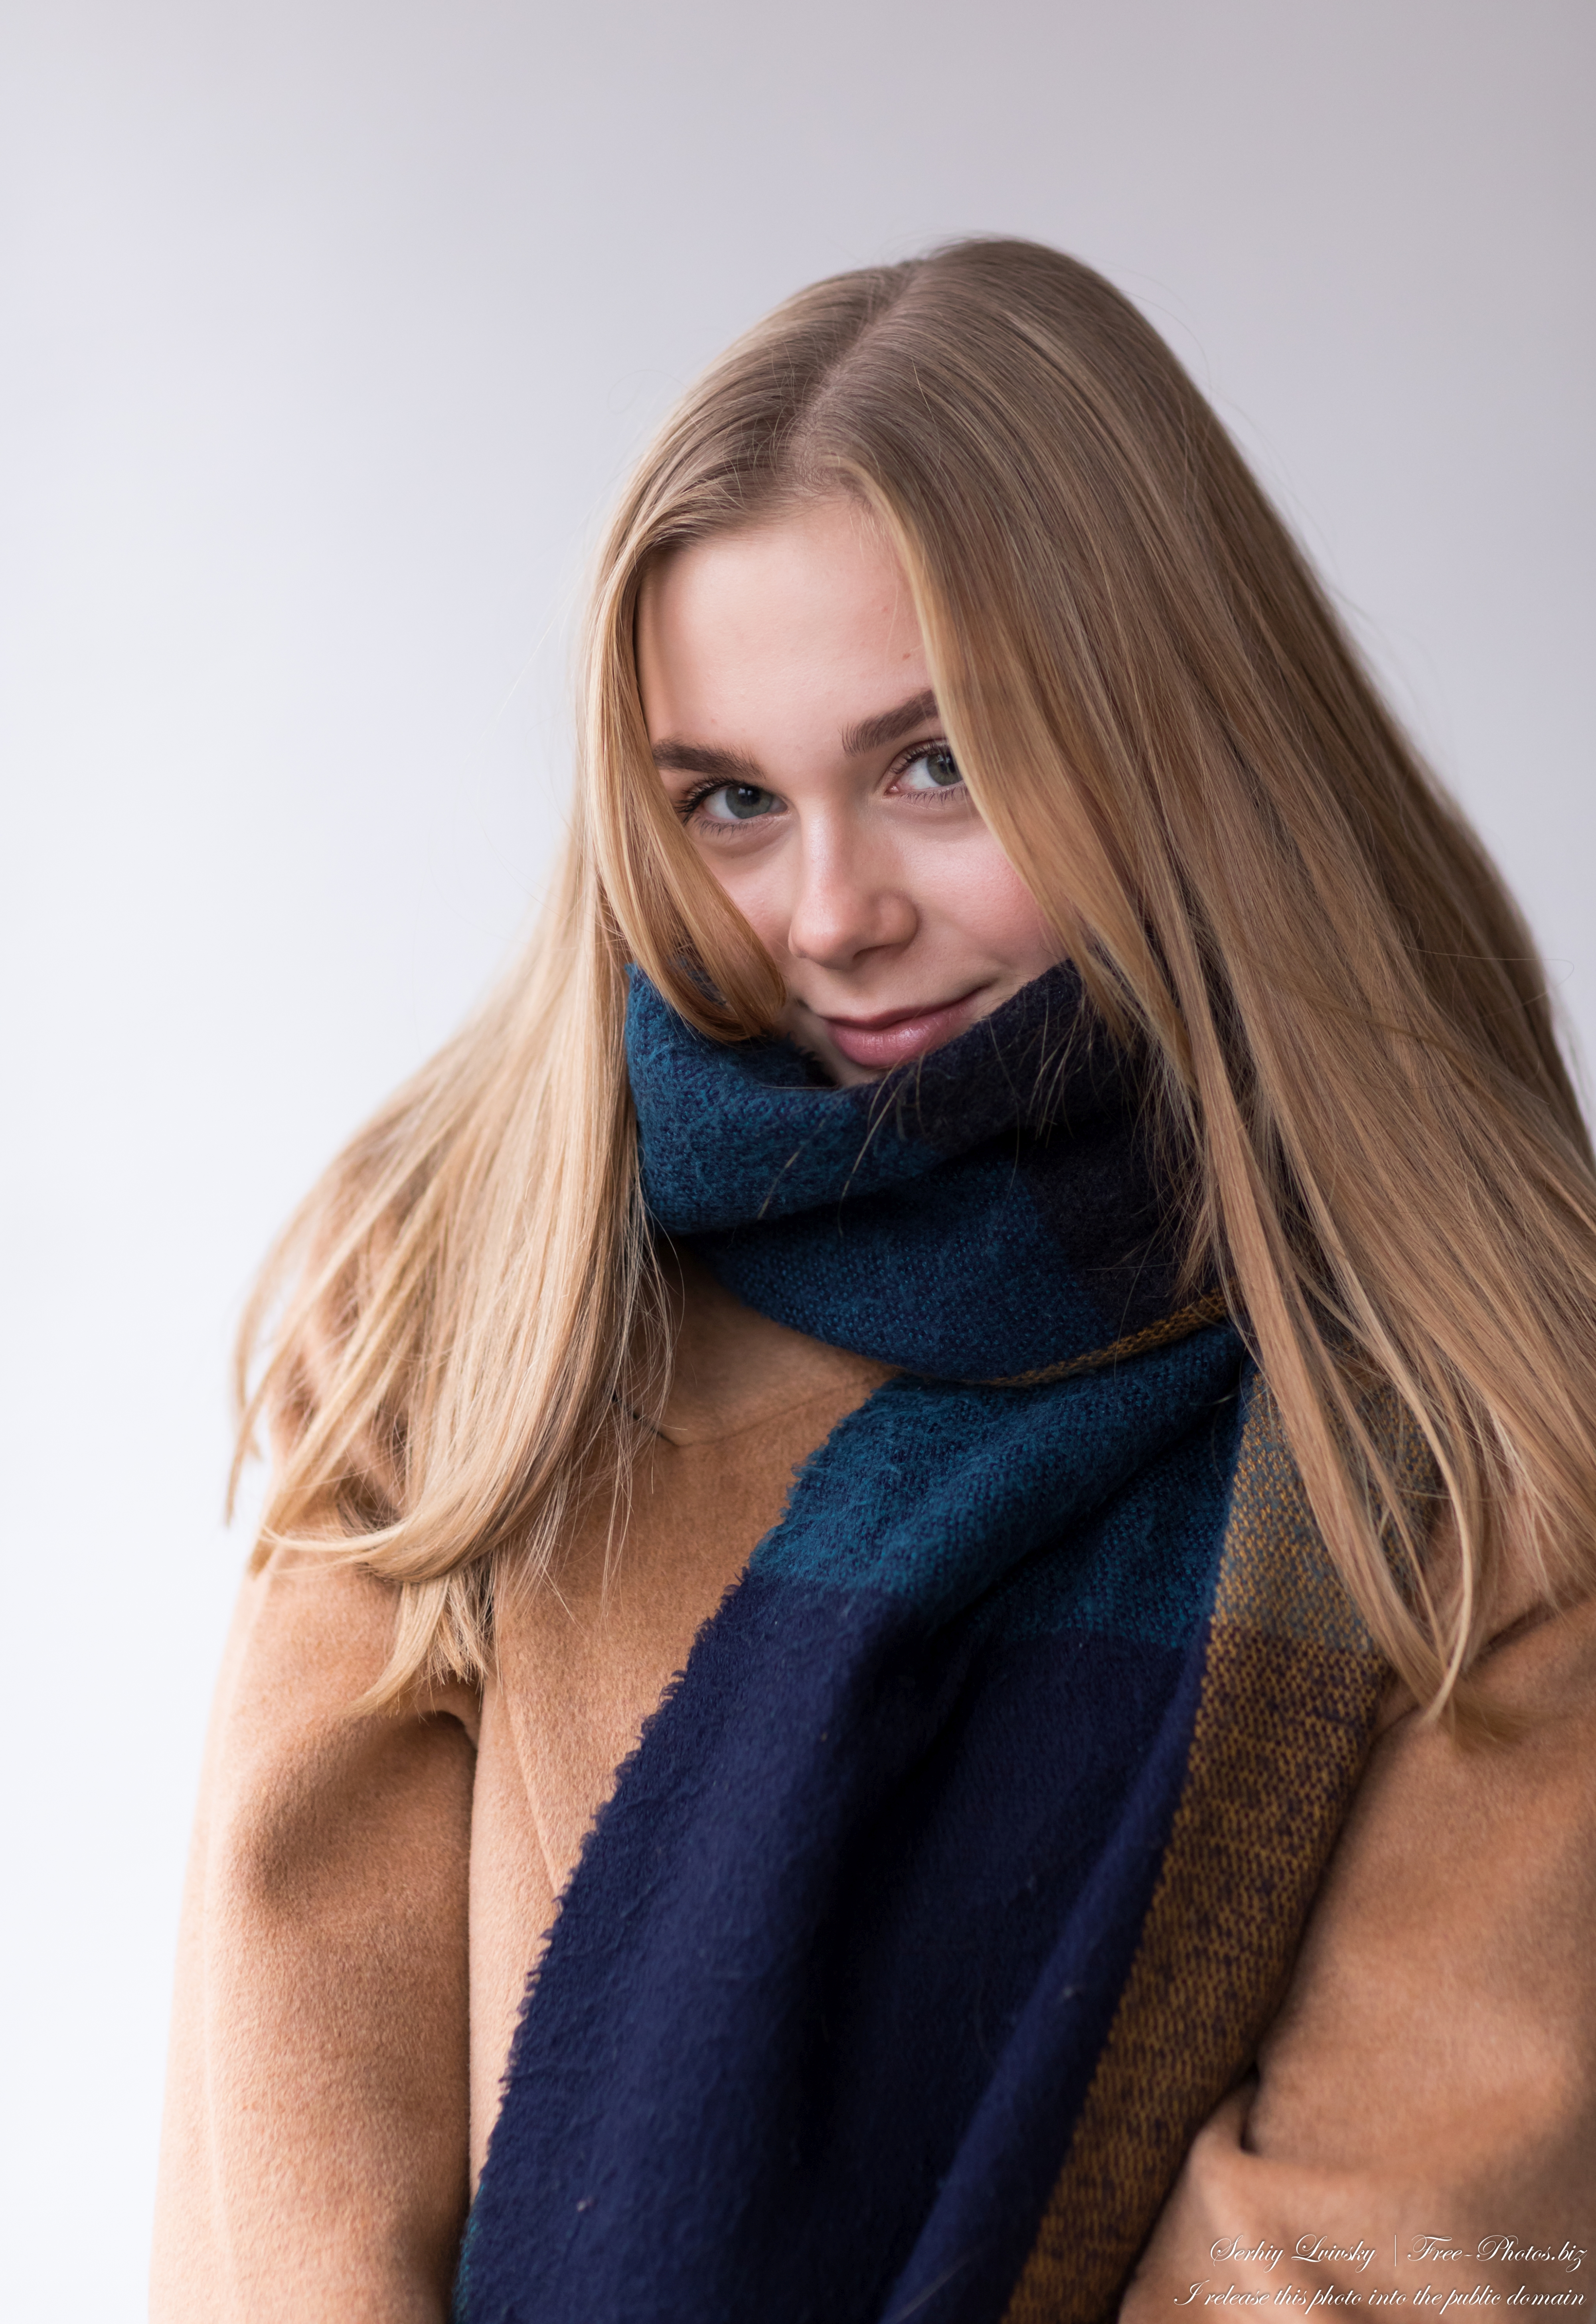 emilia_a_15-year-old_natural_blonde_catholic_girl_in_nov_2020_by_serhiy_lvivsky_10